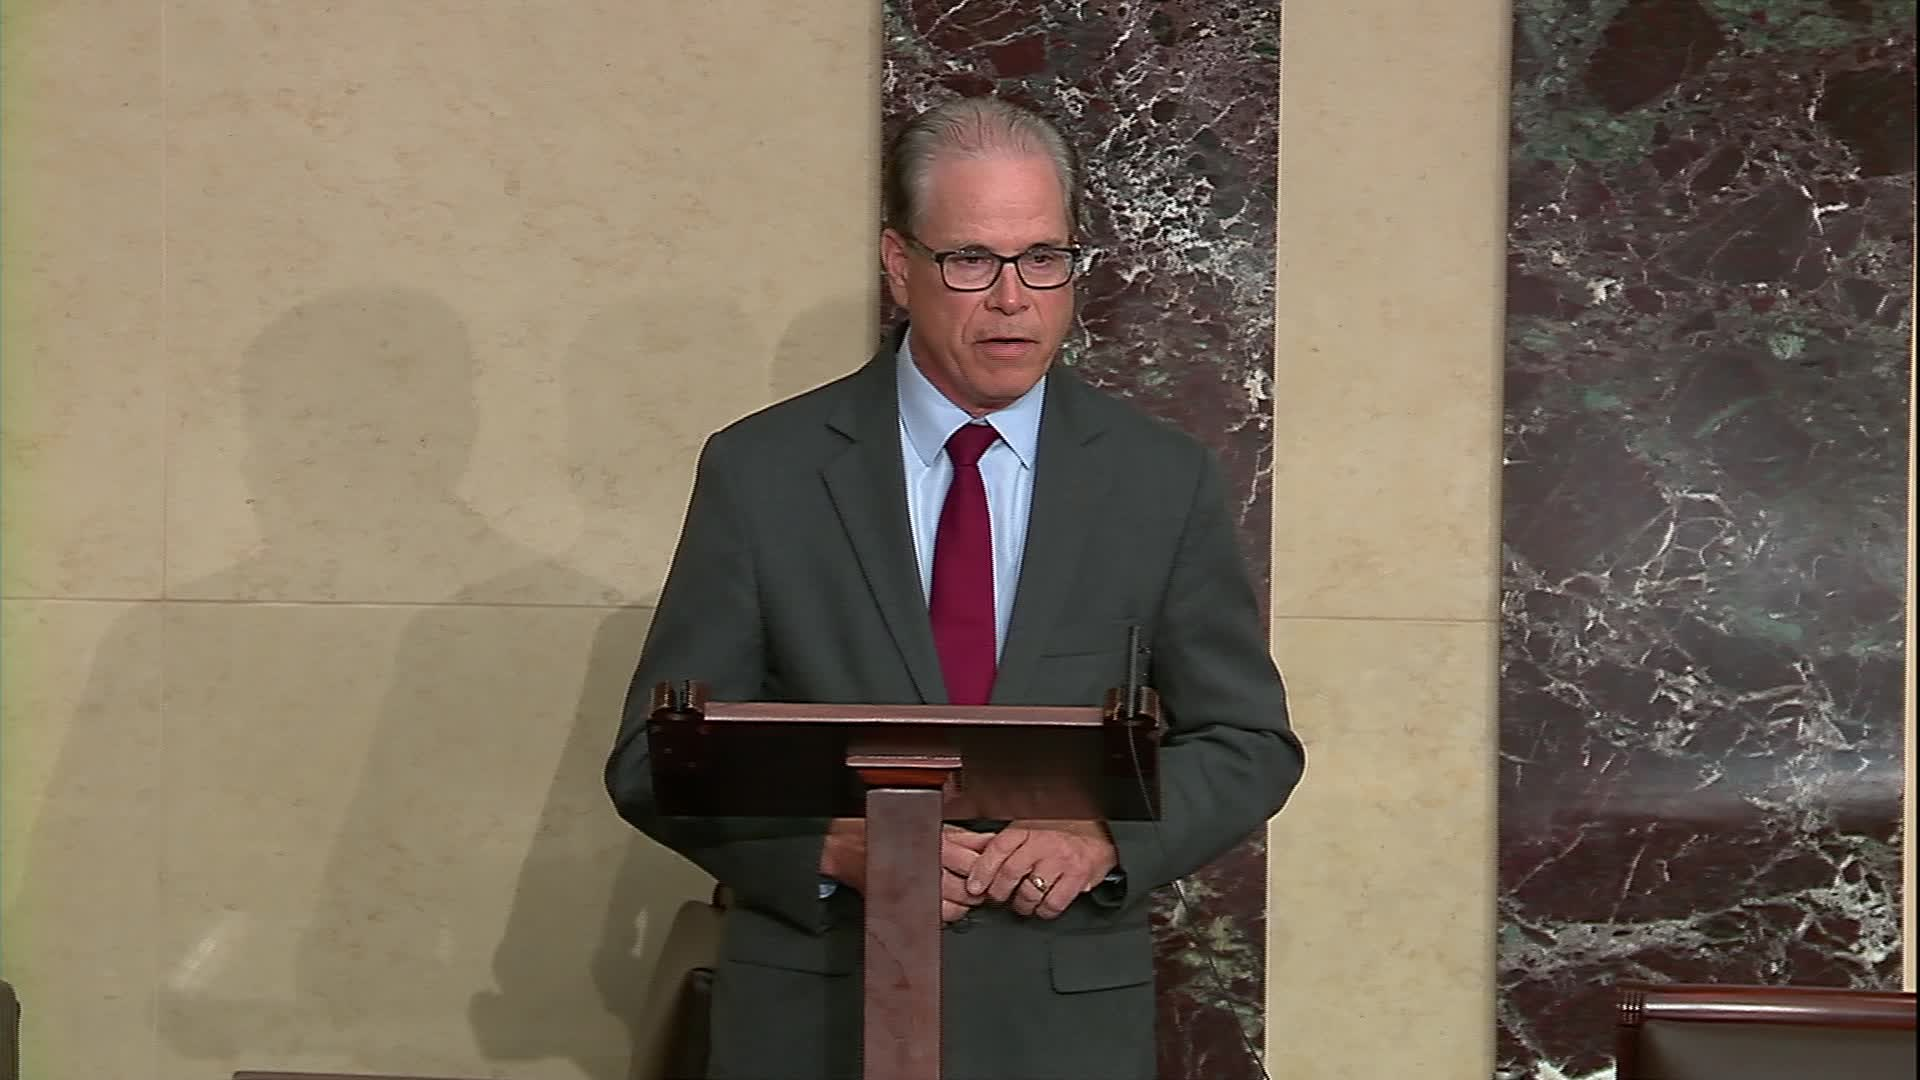 Senator Mike Braun, a Republican from Indiana, speaks on the Senate Floor in Washington on May 13.